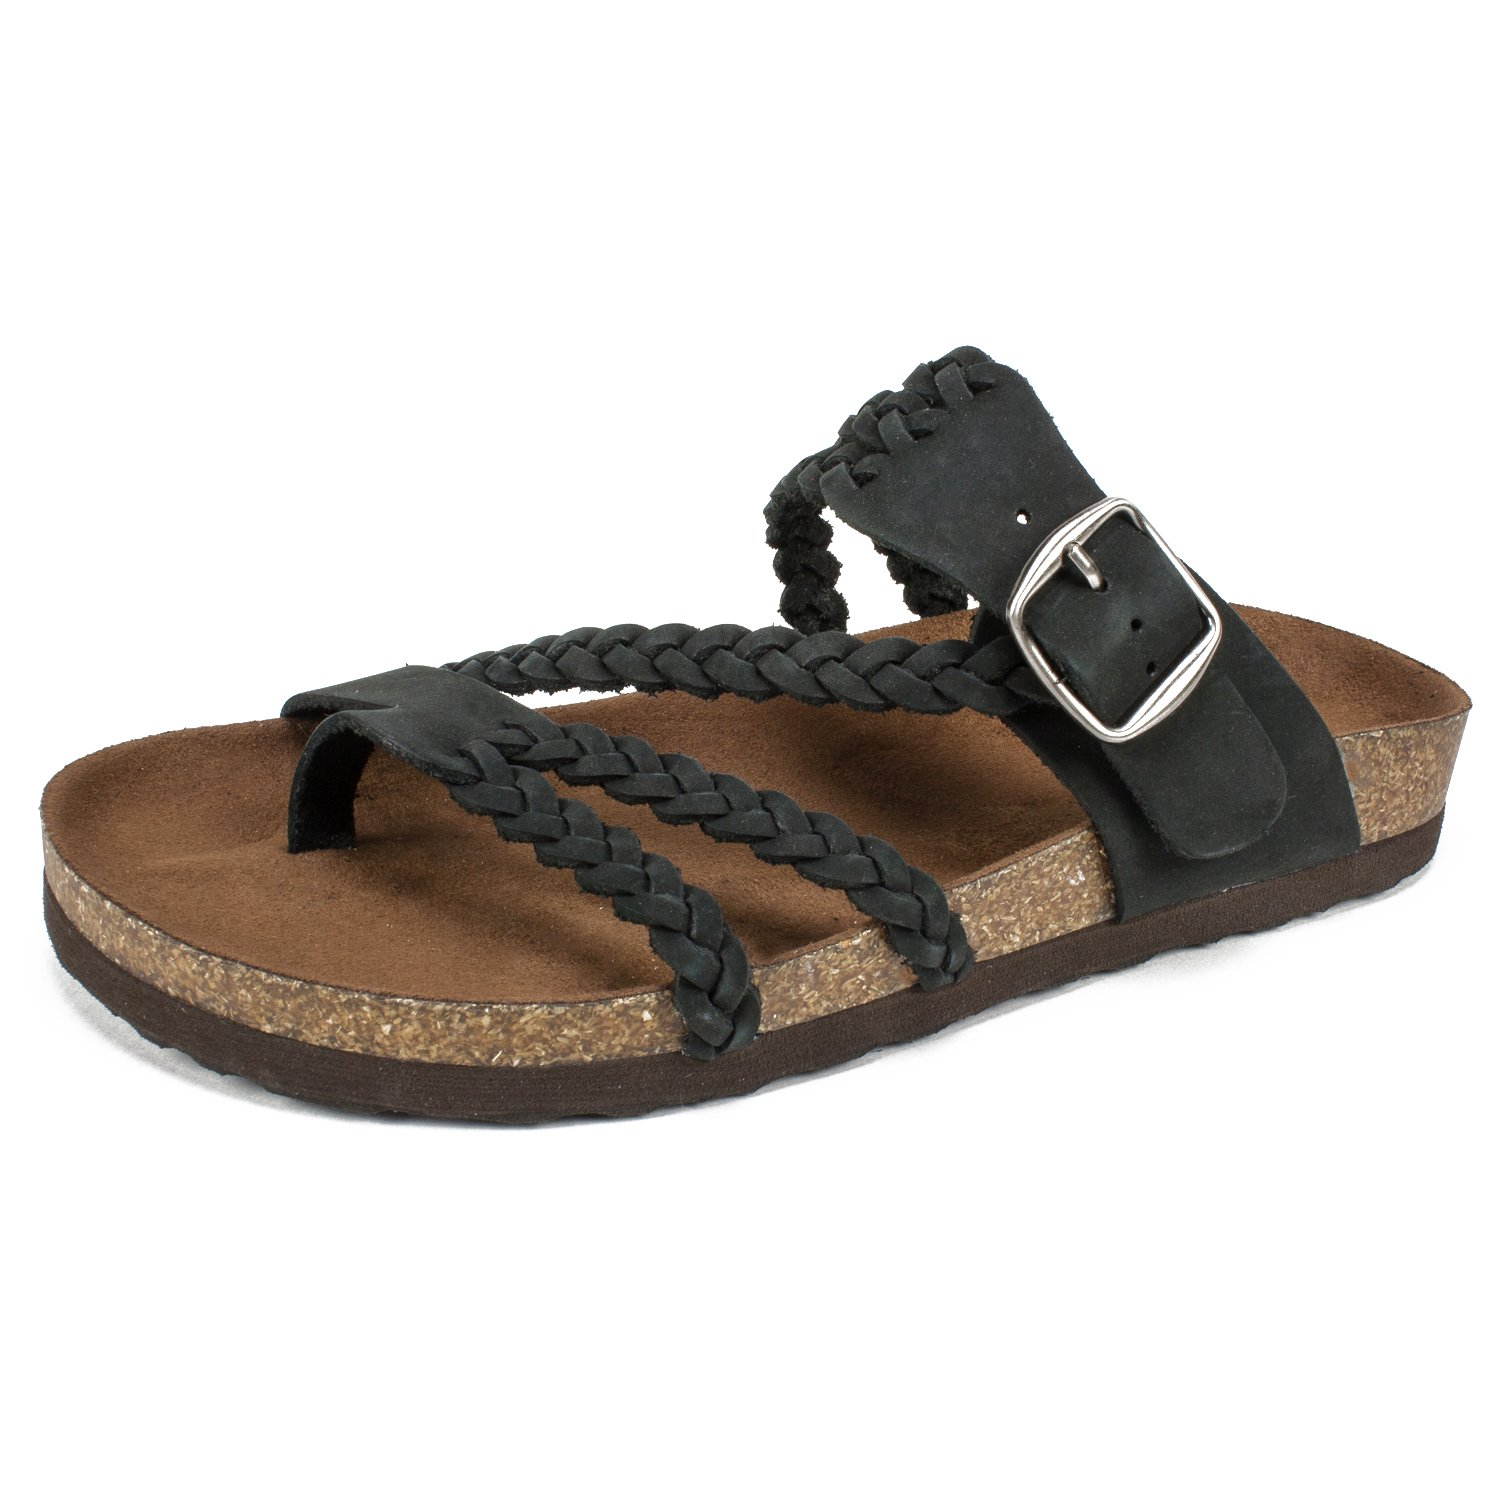 a935a0aa64c WHITE MOUNTAIN Shoes Hayleigh Women's Sandal